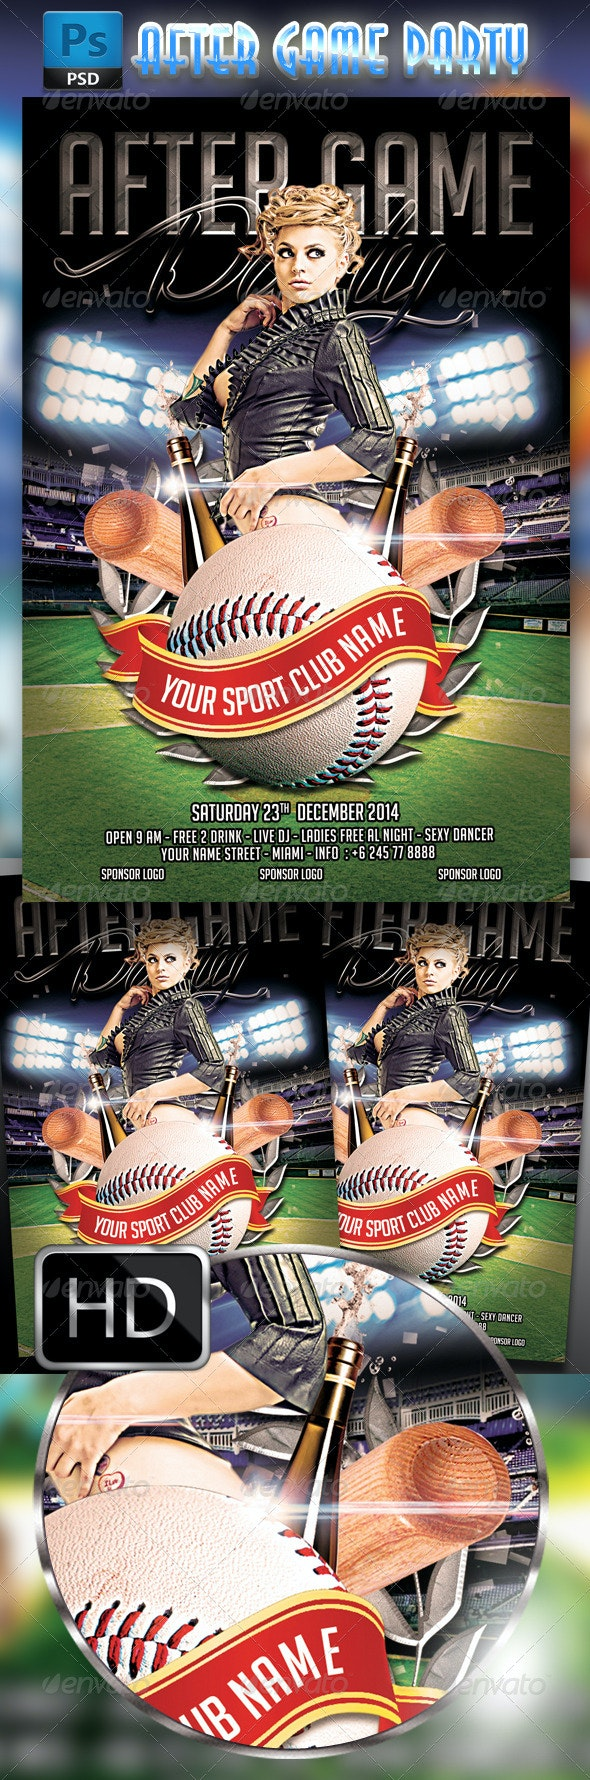 After Game Party Flyer Template - Baseball - Clubs & Parties Events